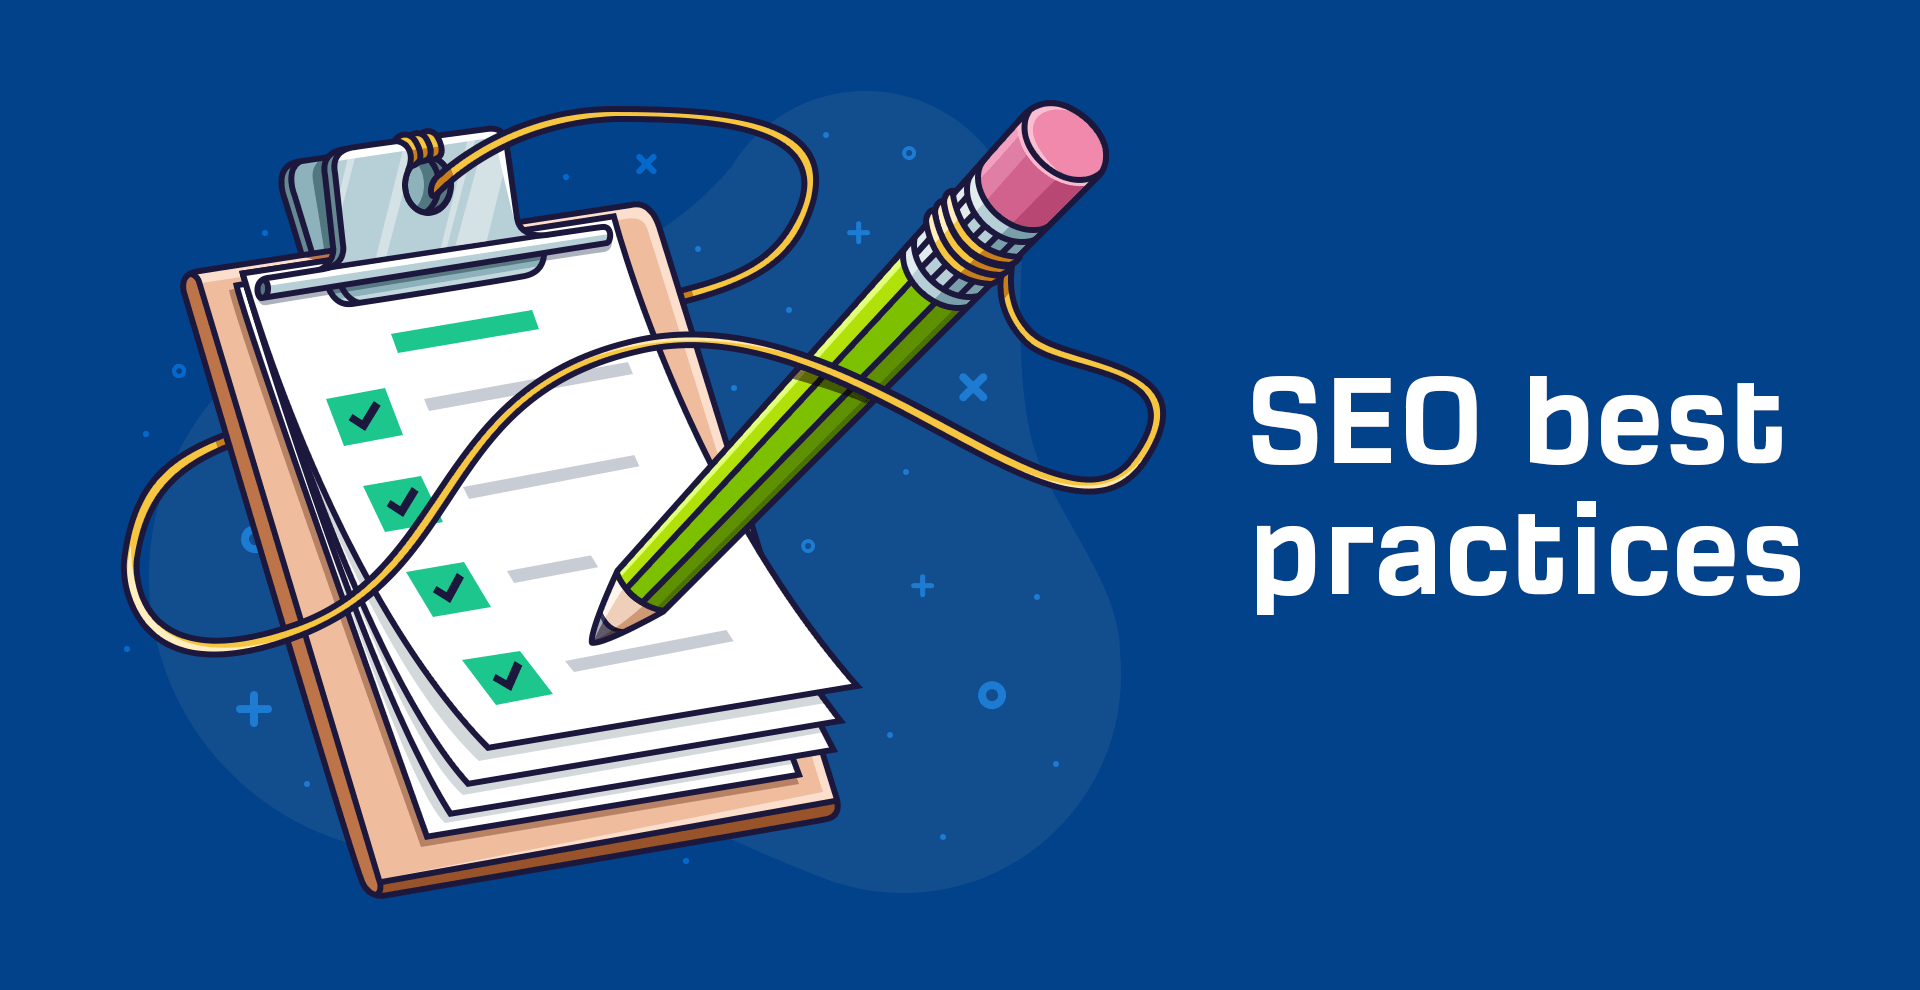 Best SEO PracThe Best SEO Practices to Enhance Business Perspectivestices